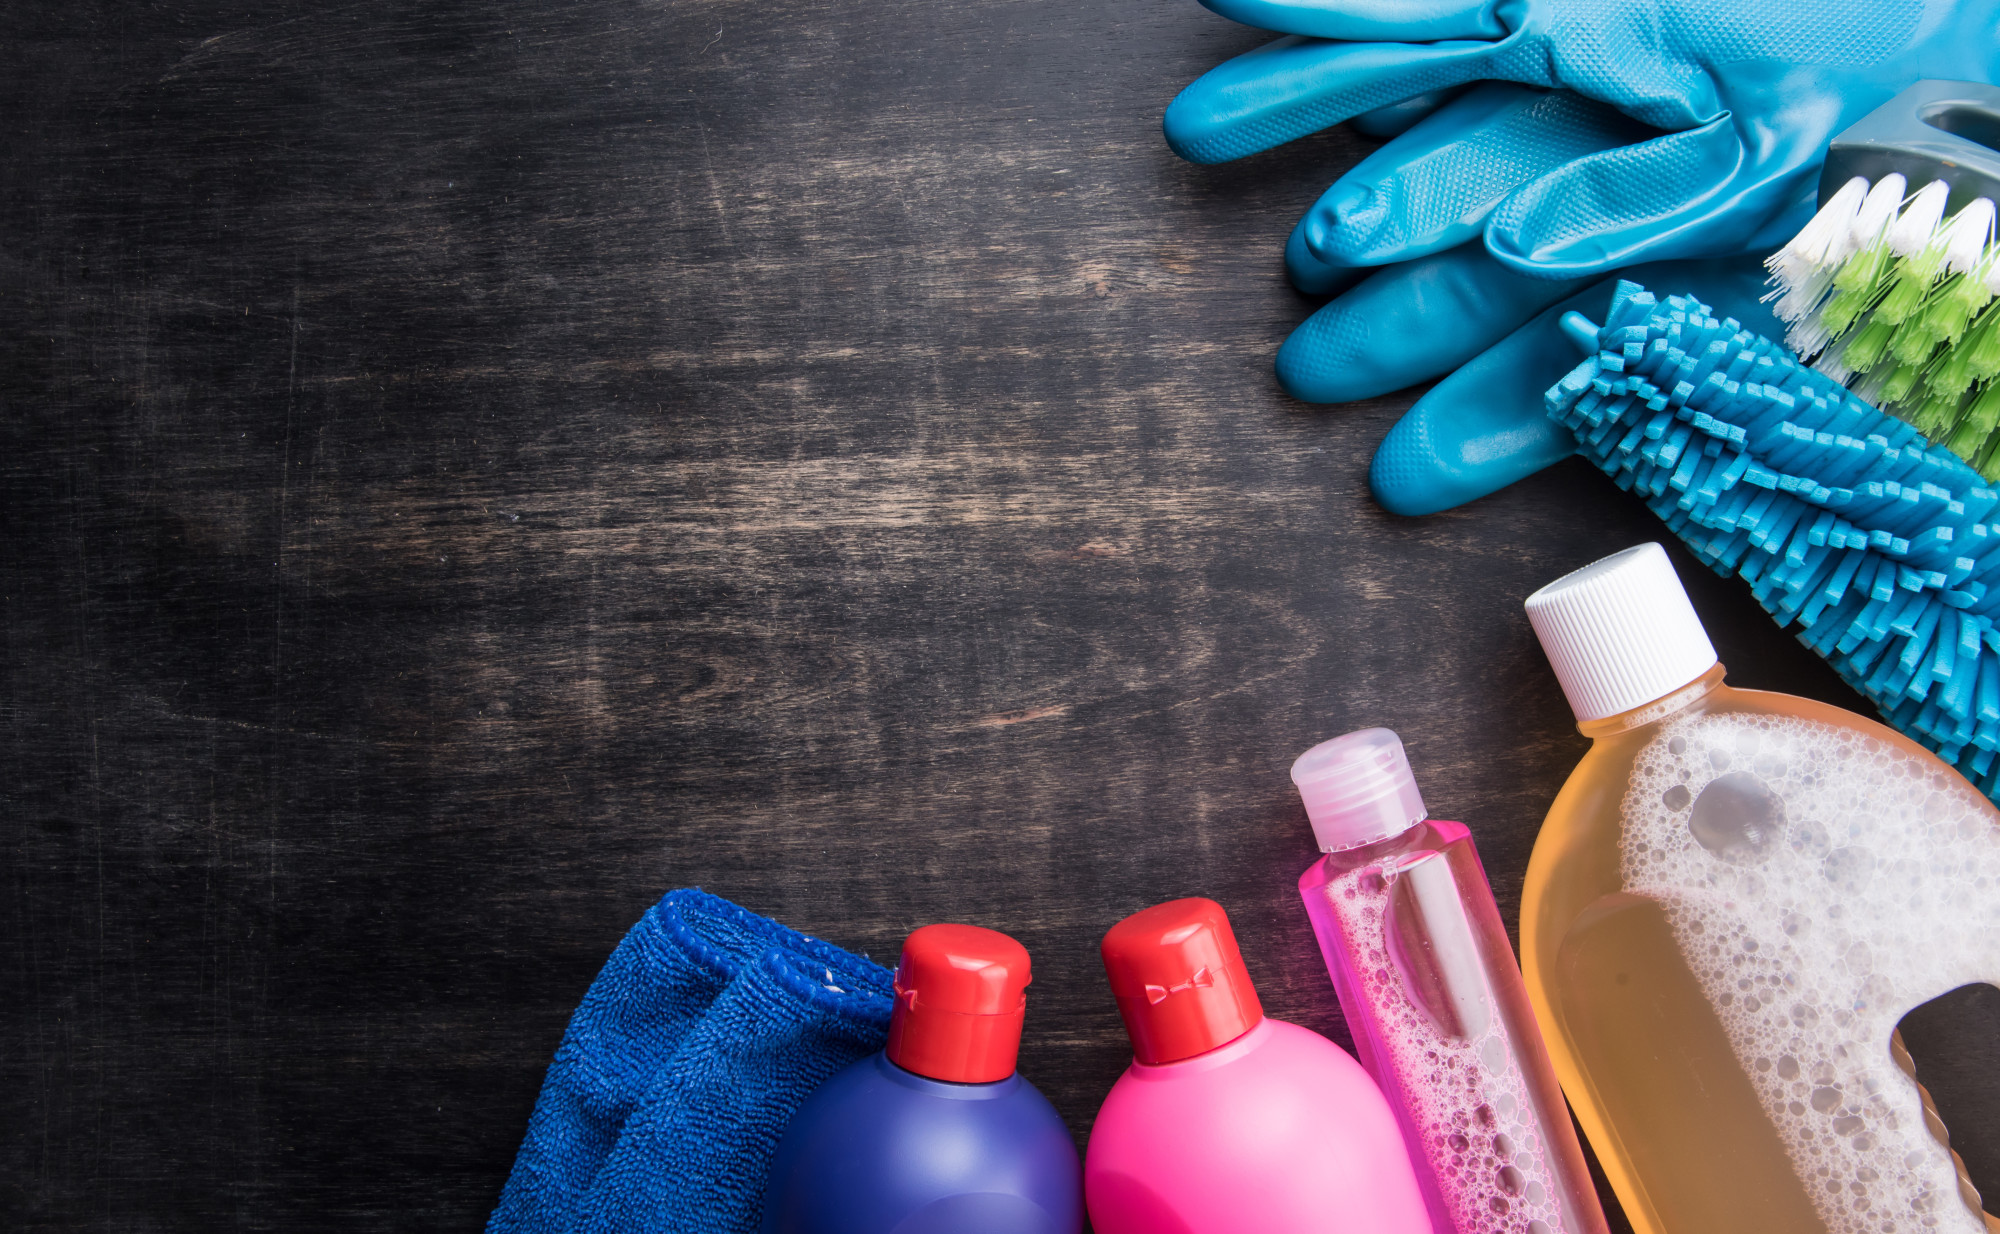 Learning to Love Cleaning: How to Make Cleaning Fun (5 Great Tips)